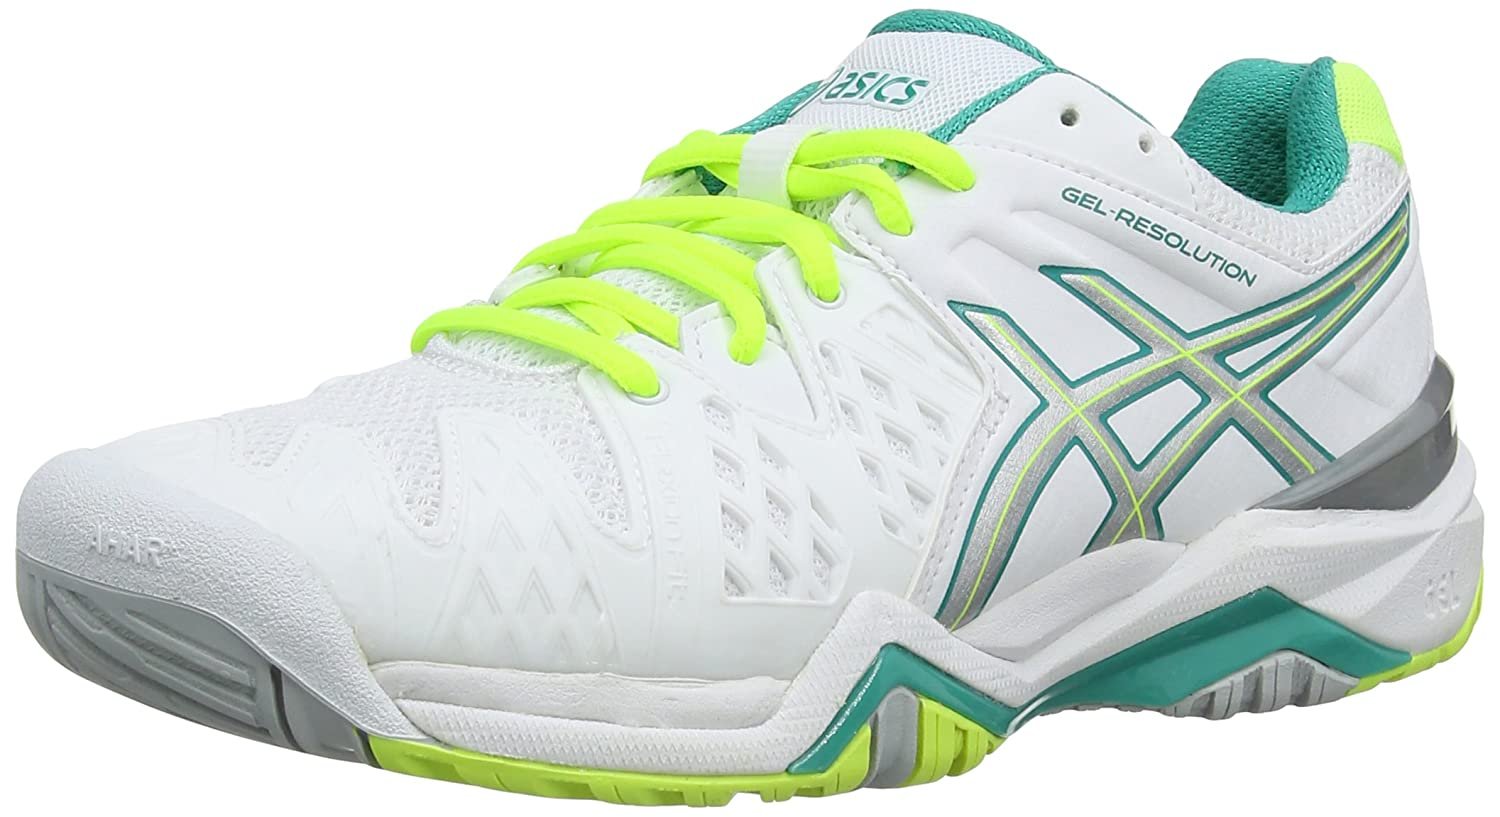 Asics Gel-Resolution 6, Chaussures de Tennis Femme 36 EU E550Y-0188